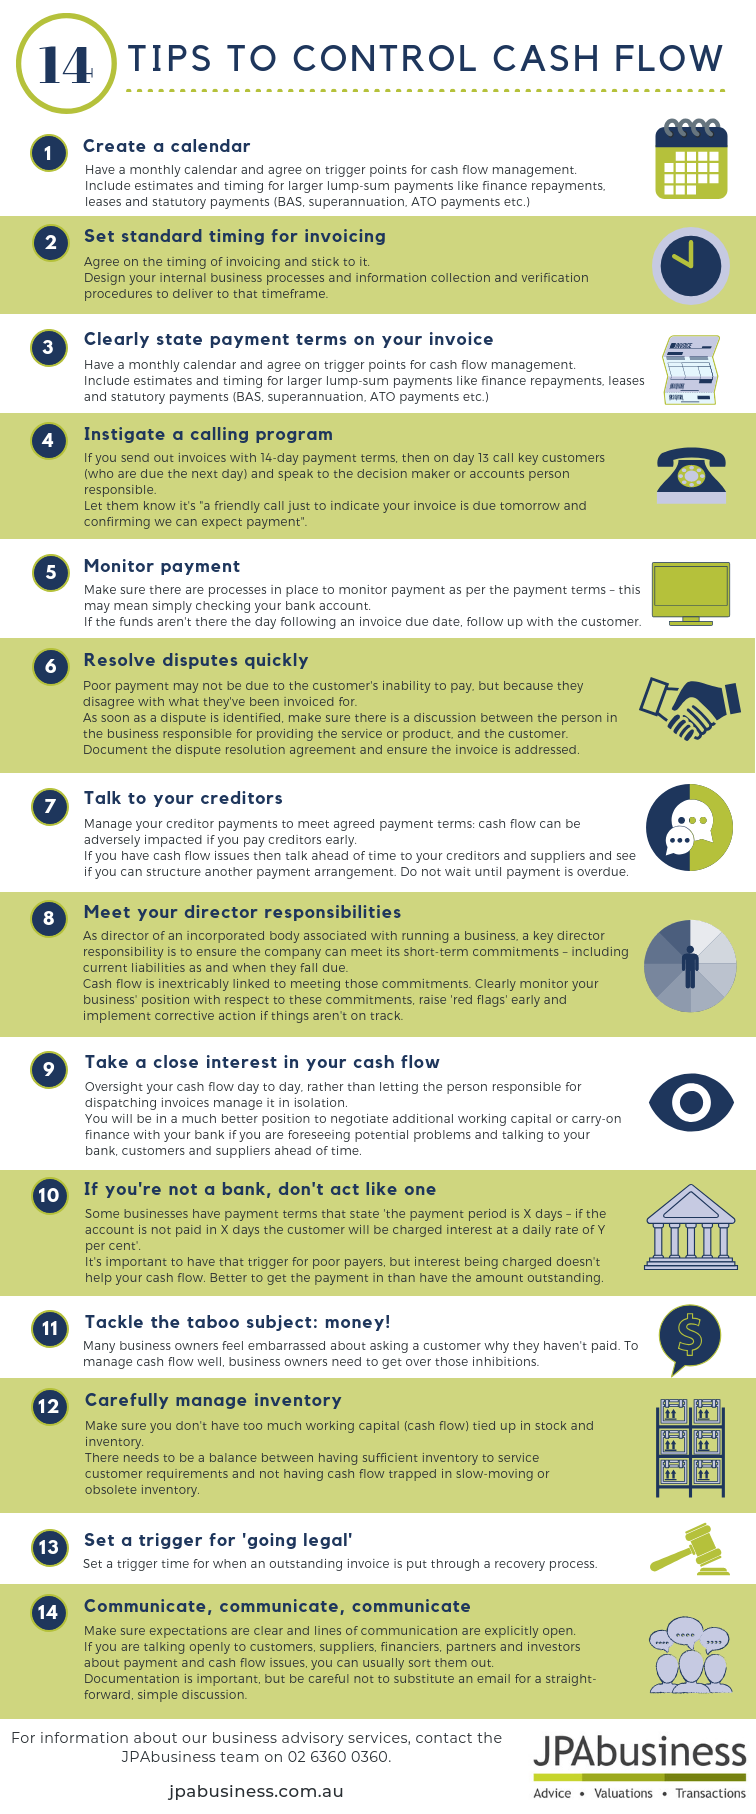 14 tips to control cash flow cheat sheet